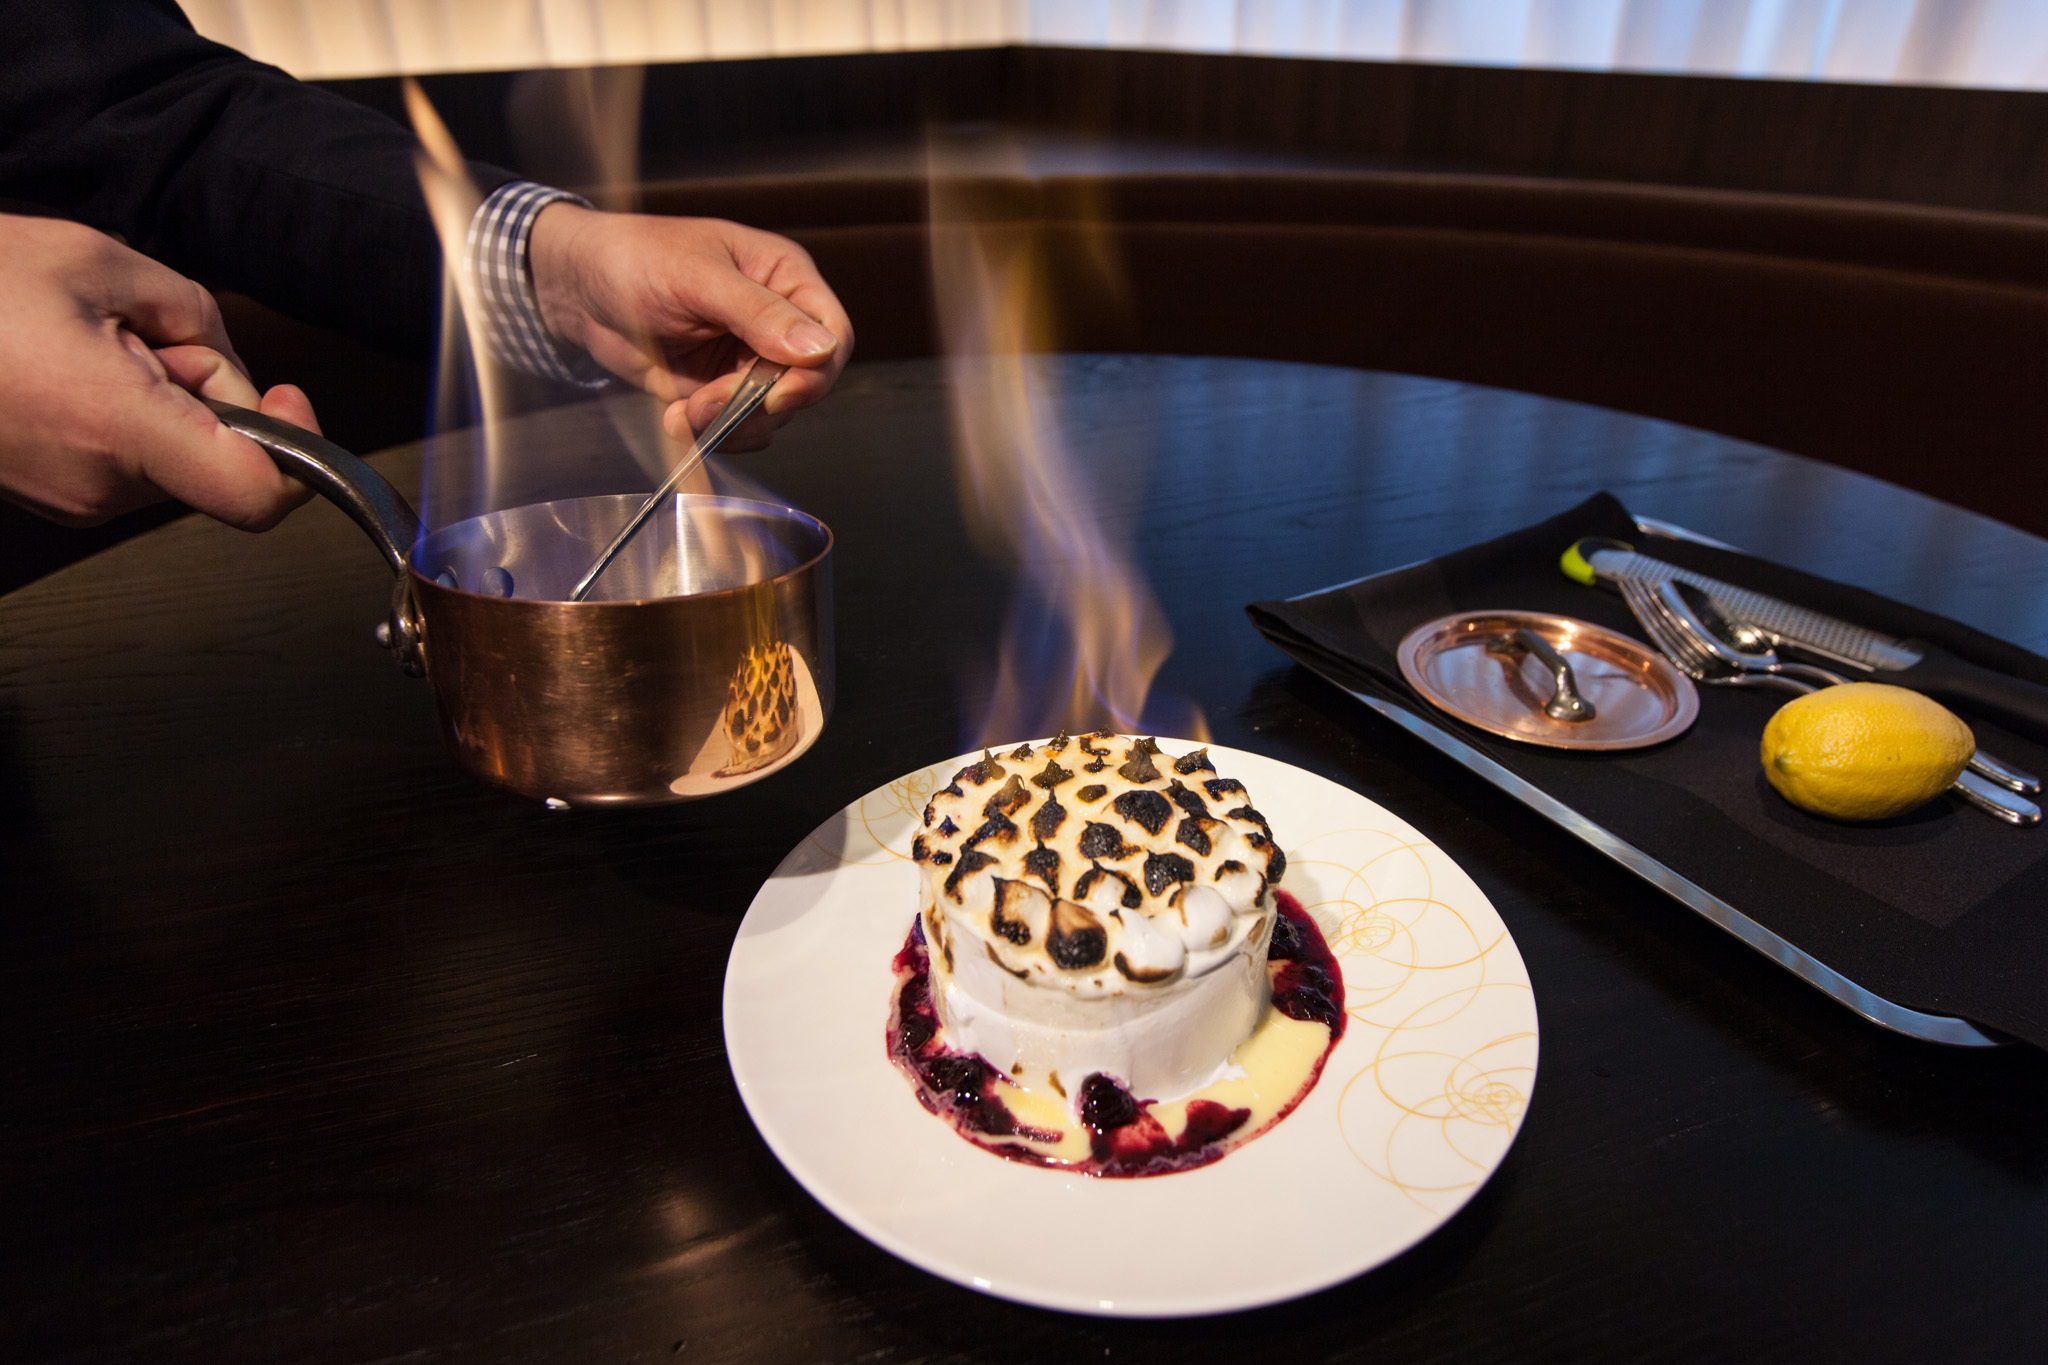 Baked Alaska at RPM Steak You need to order the baked Alaska as much for the presentation—set ablaze next to your table—as for the flavor. Filled with lemon sorbet, it's the love child between baked Alaska and lemon meringue pie. $11.